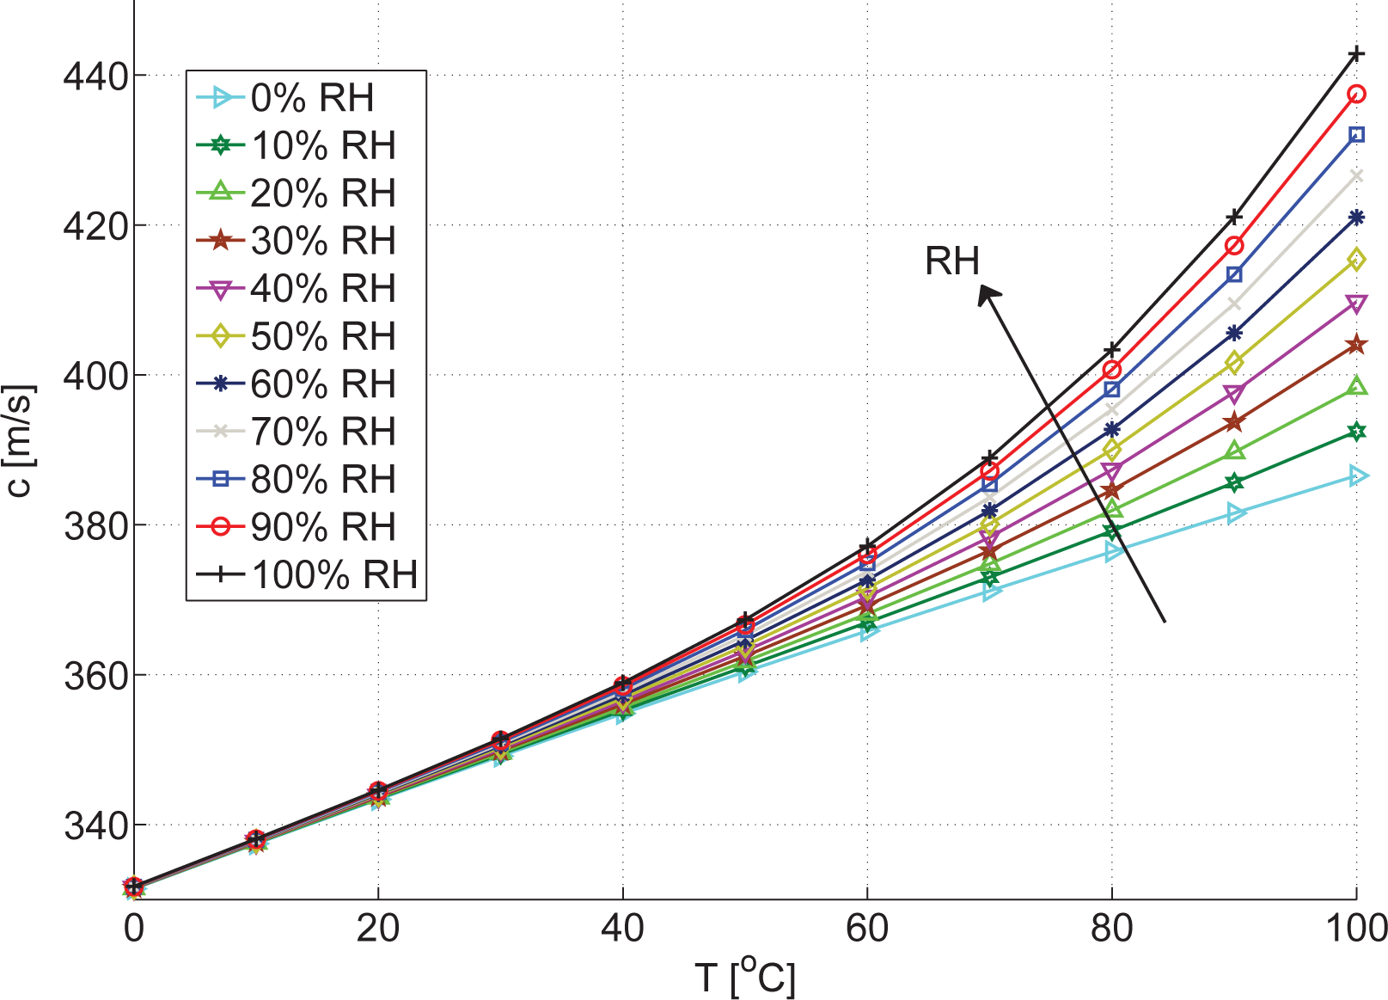 resistivity and temperature relationship to humidity